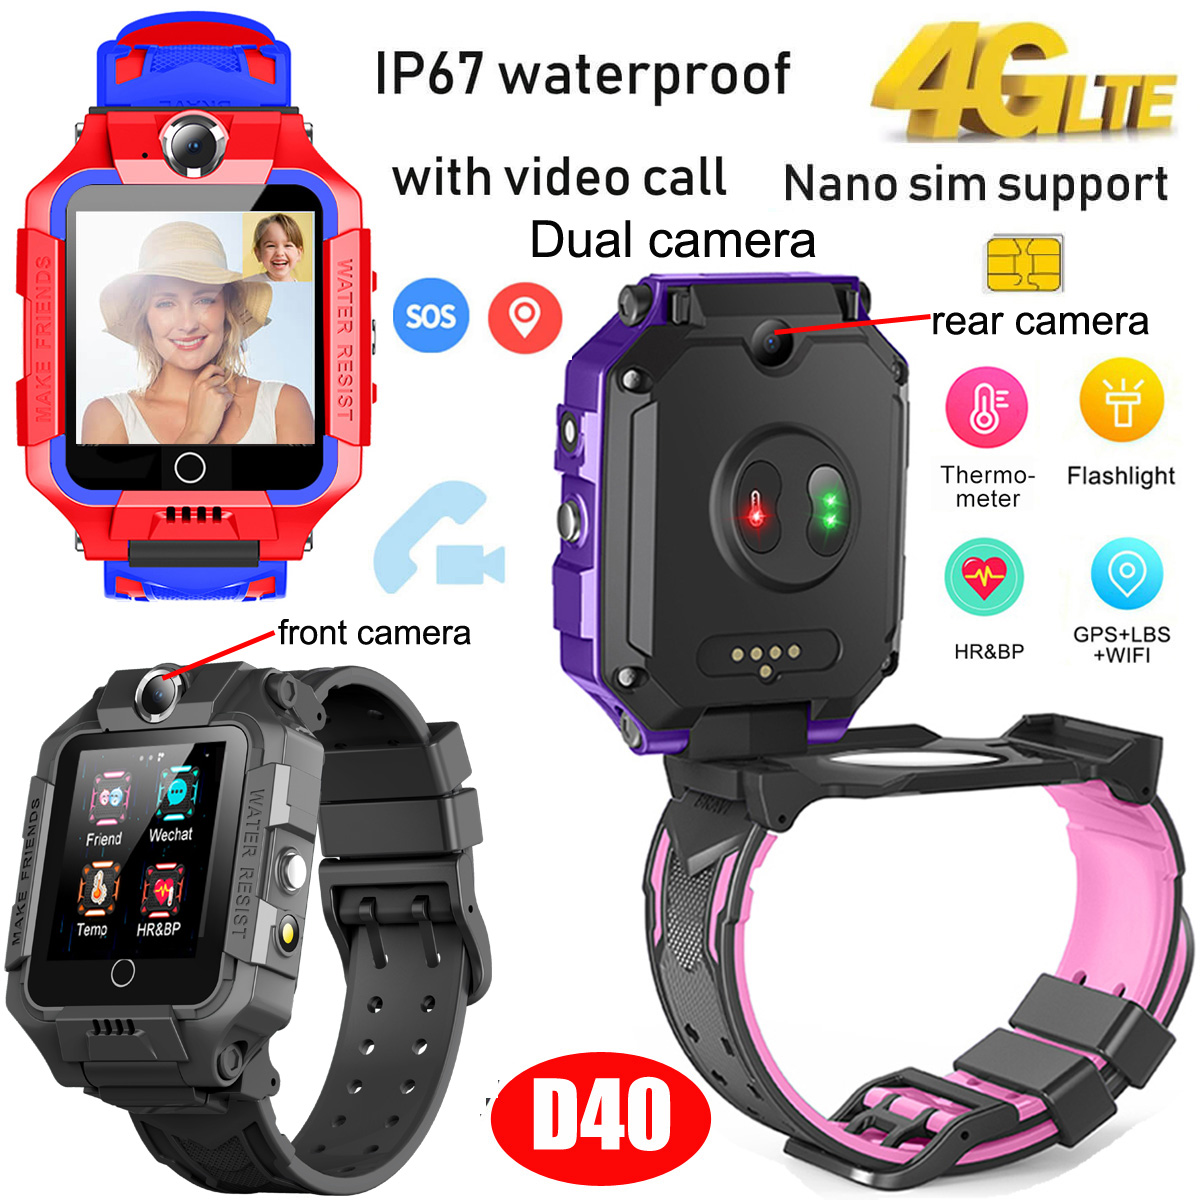 Thermometer 4G/Lte video Call GPS Tracker Watch with Heart Rate Blood Pressure D40